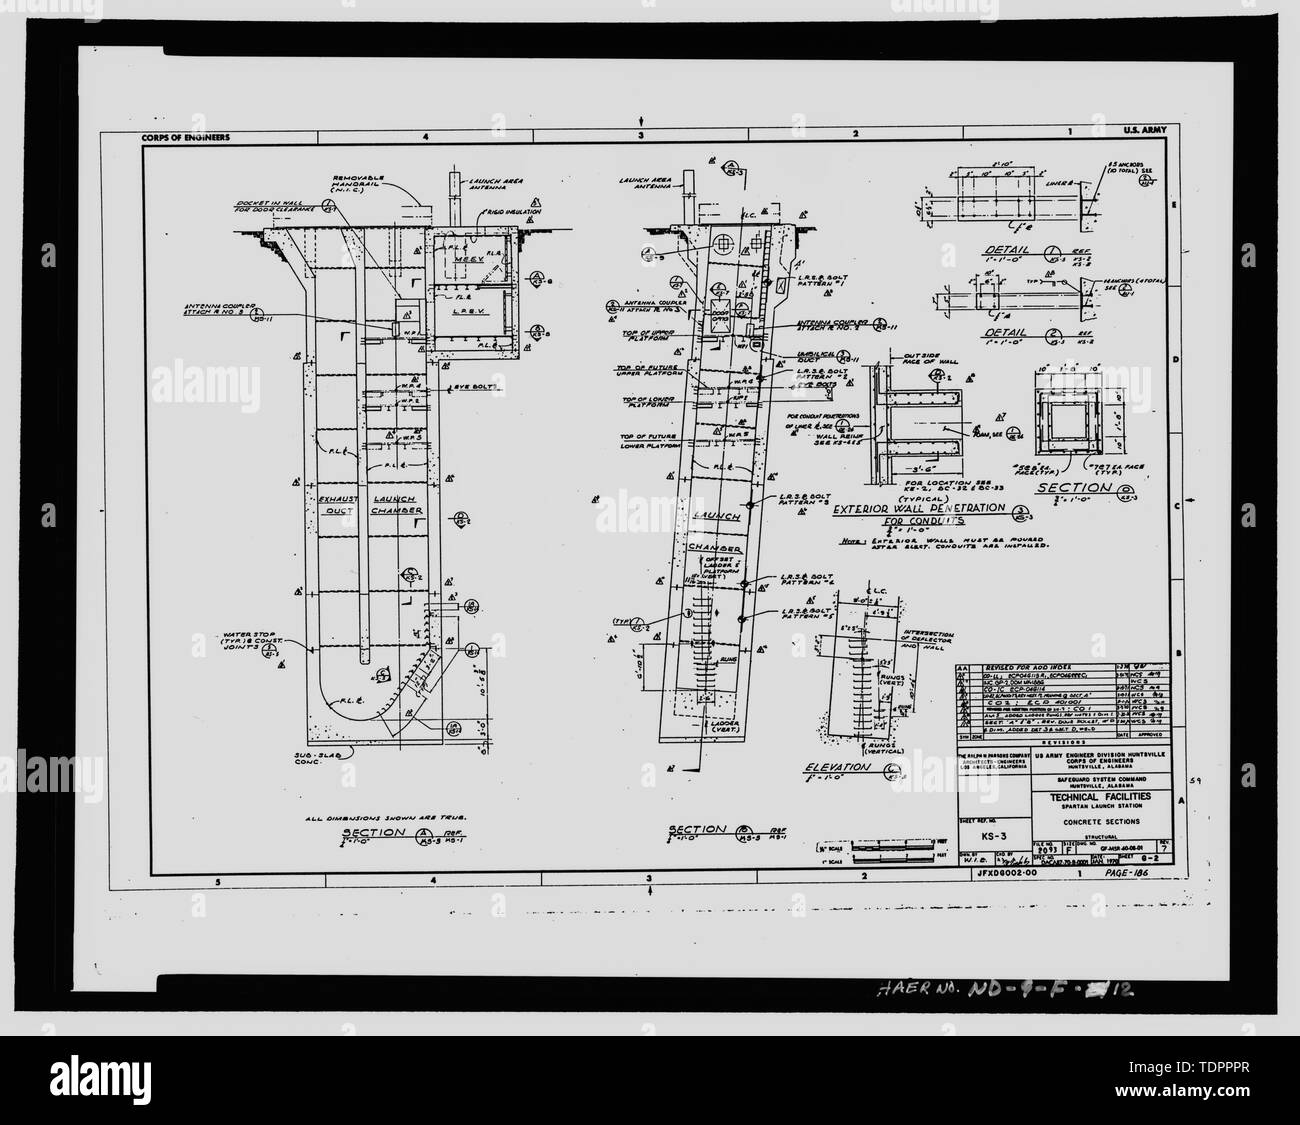 Photographic copy of original design drawing, dated January